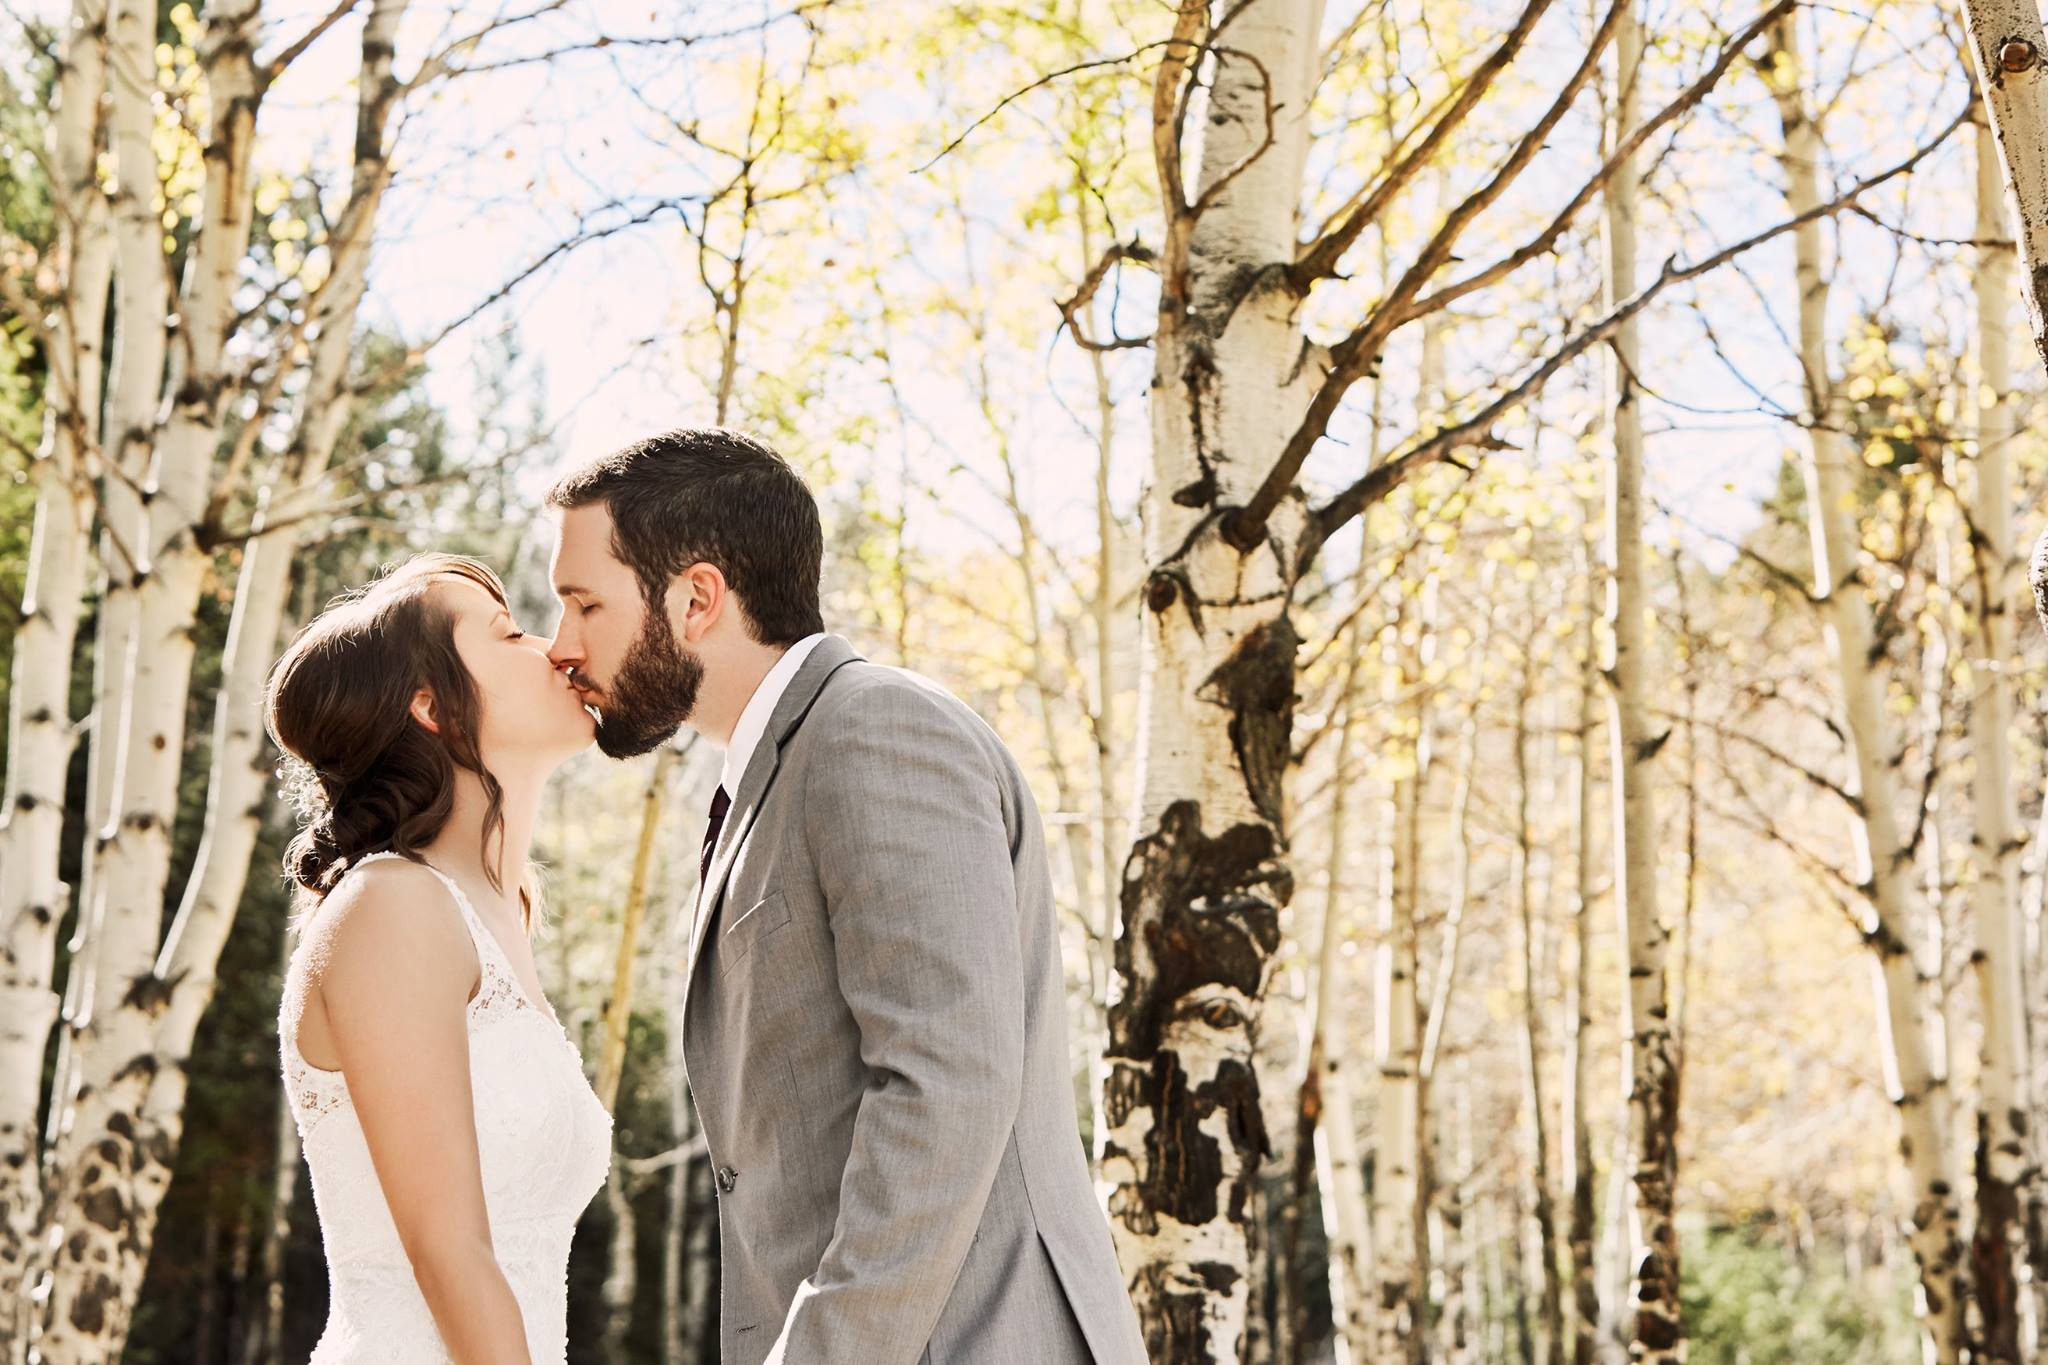 Mike + Bailey's Meadow Creek Mountain Lodge Wedding - Meadow Creek Mountain Lodge | Pine, Colorado | Wedding Beer Bong | Aspen Trees | Lawn Games